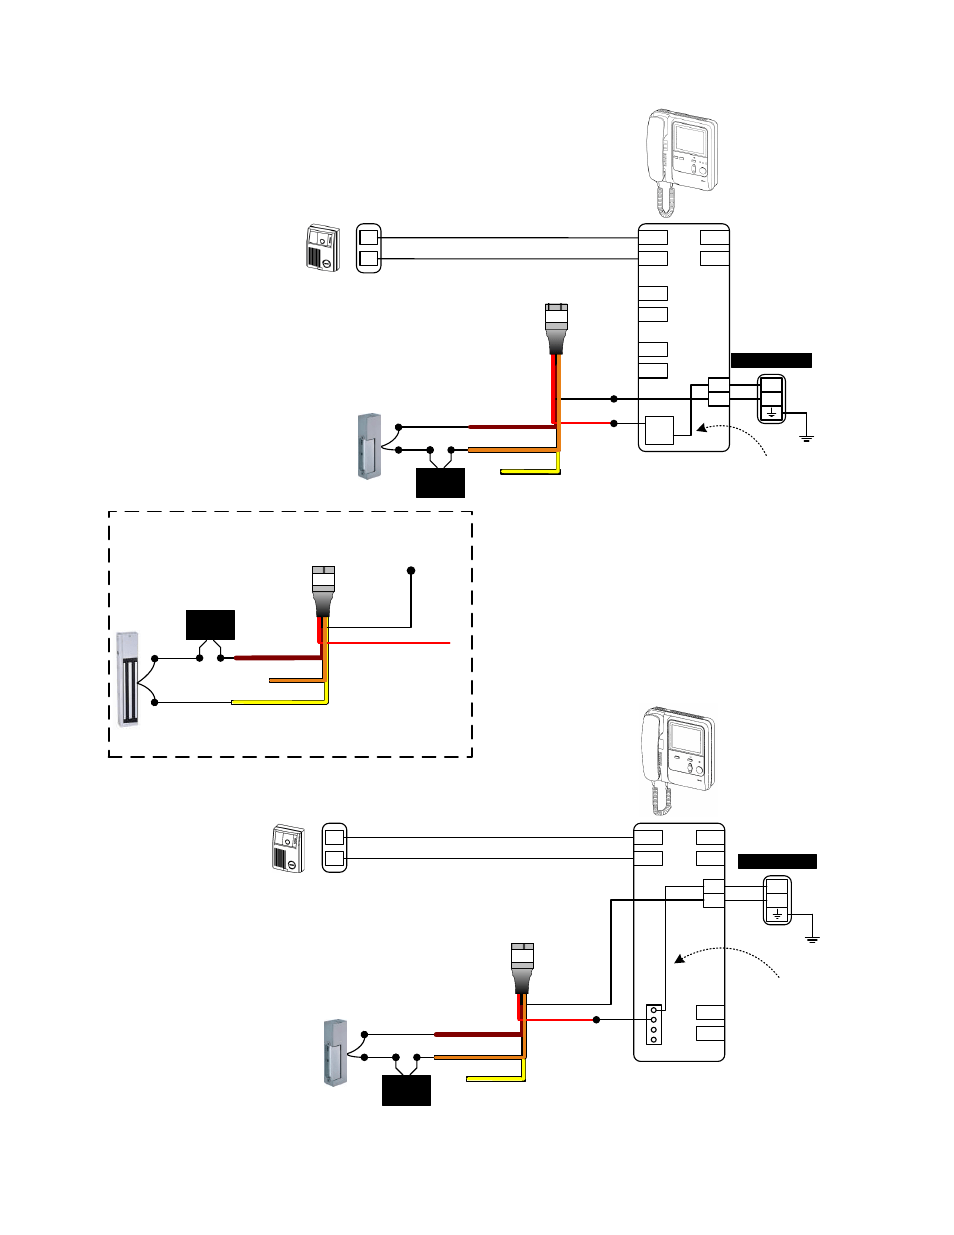 aiphone door release relay module ry 24l page2?resize\=665%2C861 wiring diagram hid edge solo 5 pin relay wiring diagram, led von duprin wiring diagram at gsmportal.co